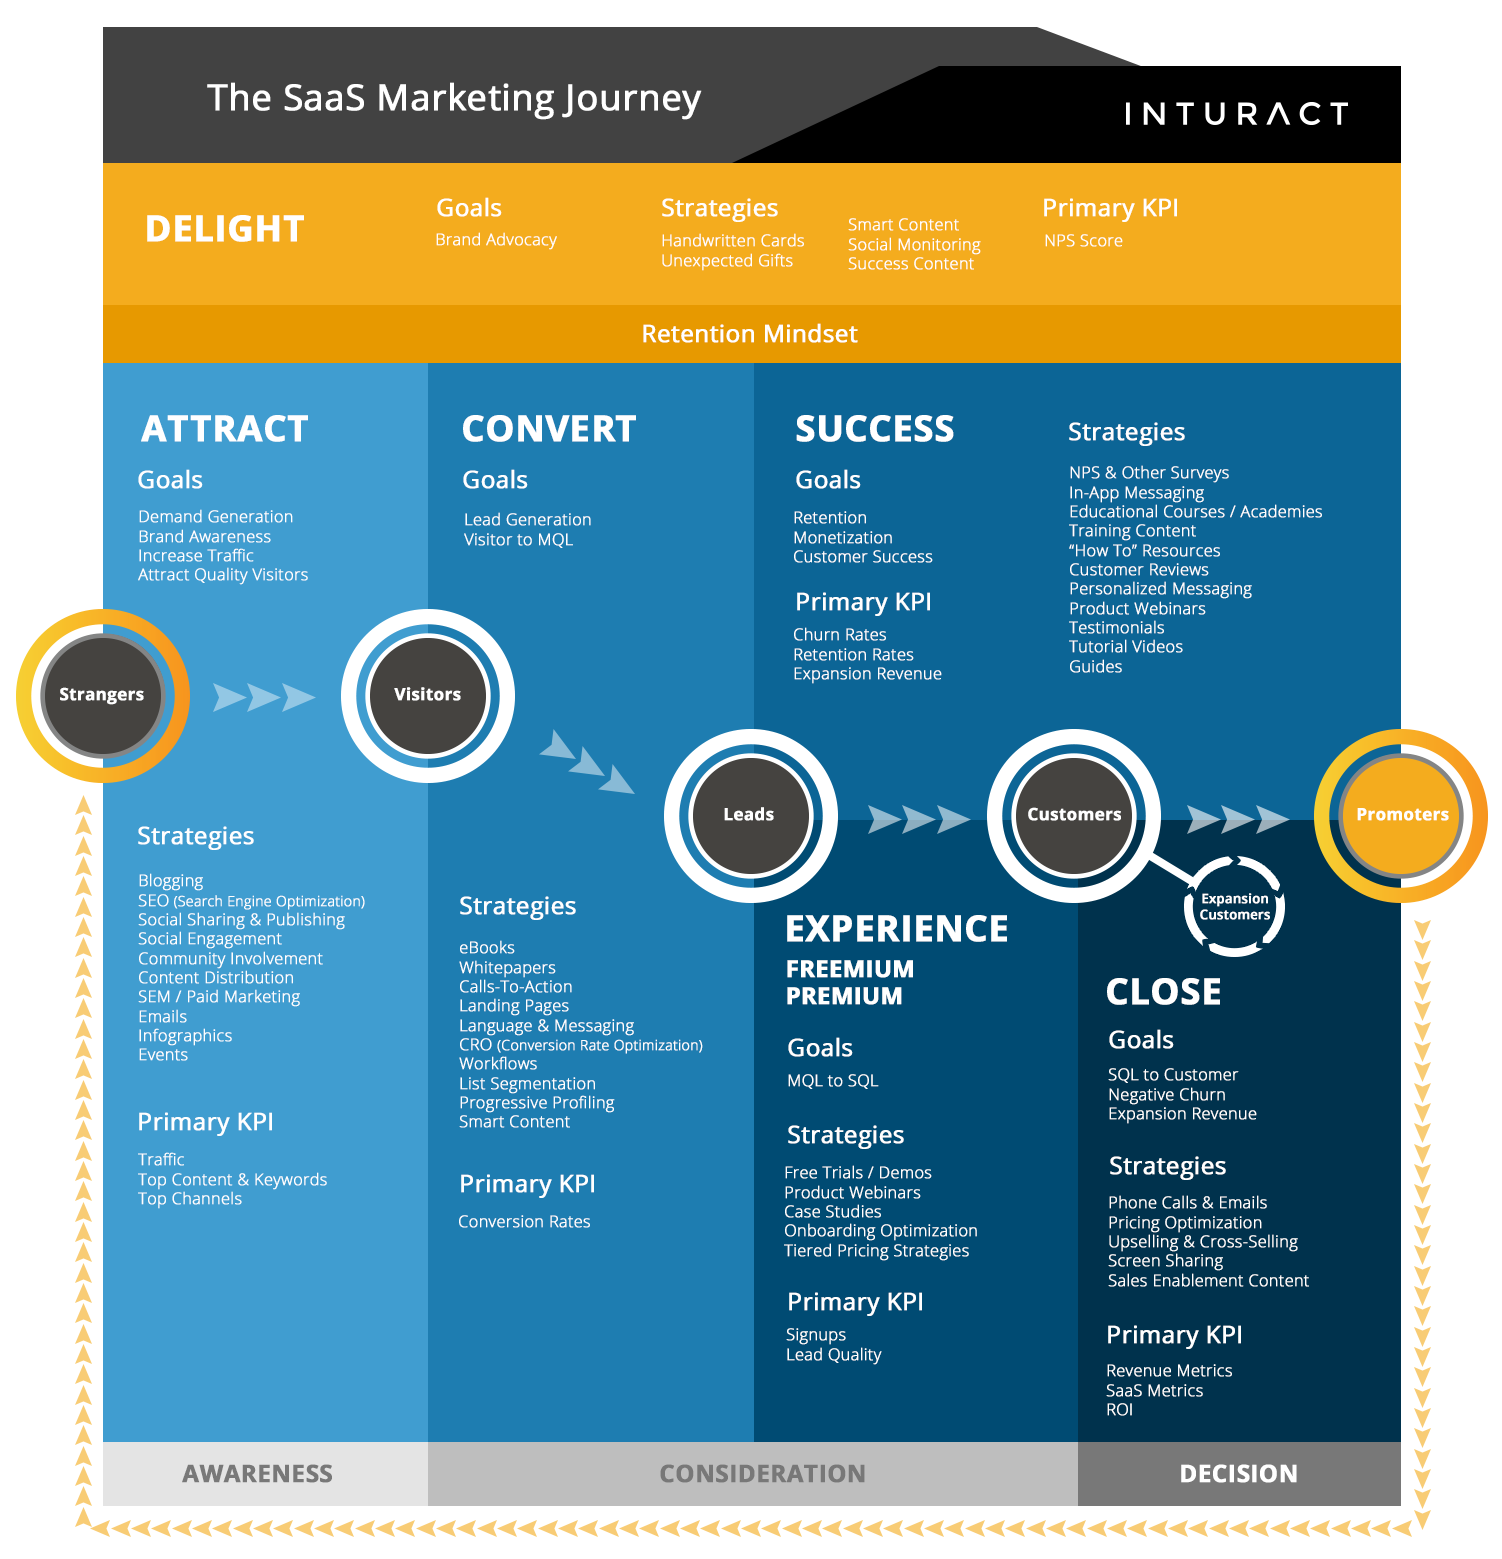 The SaaS Marketing Journey